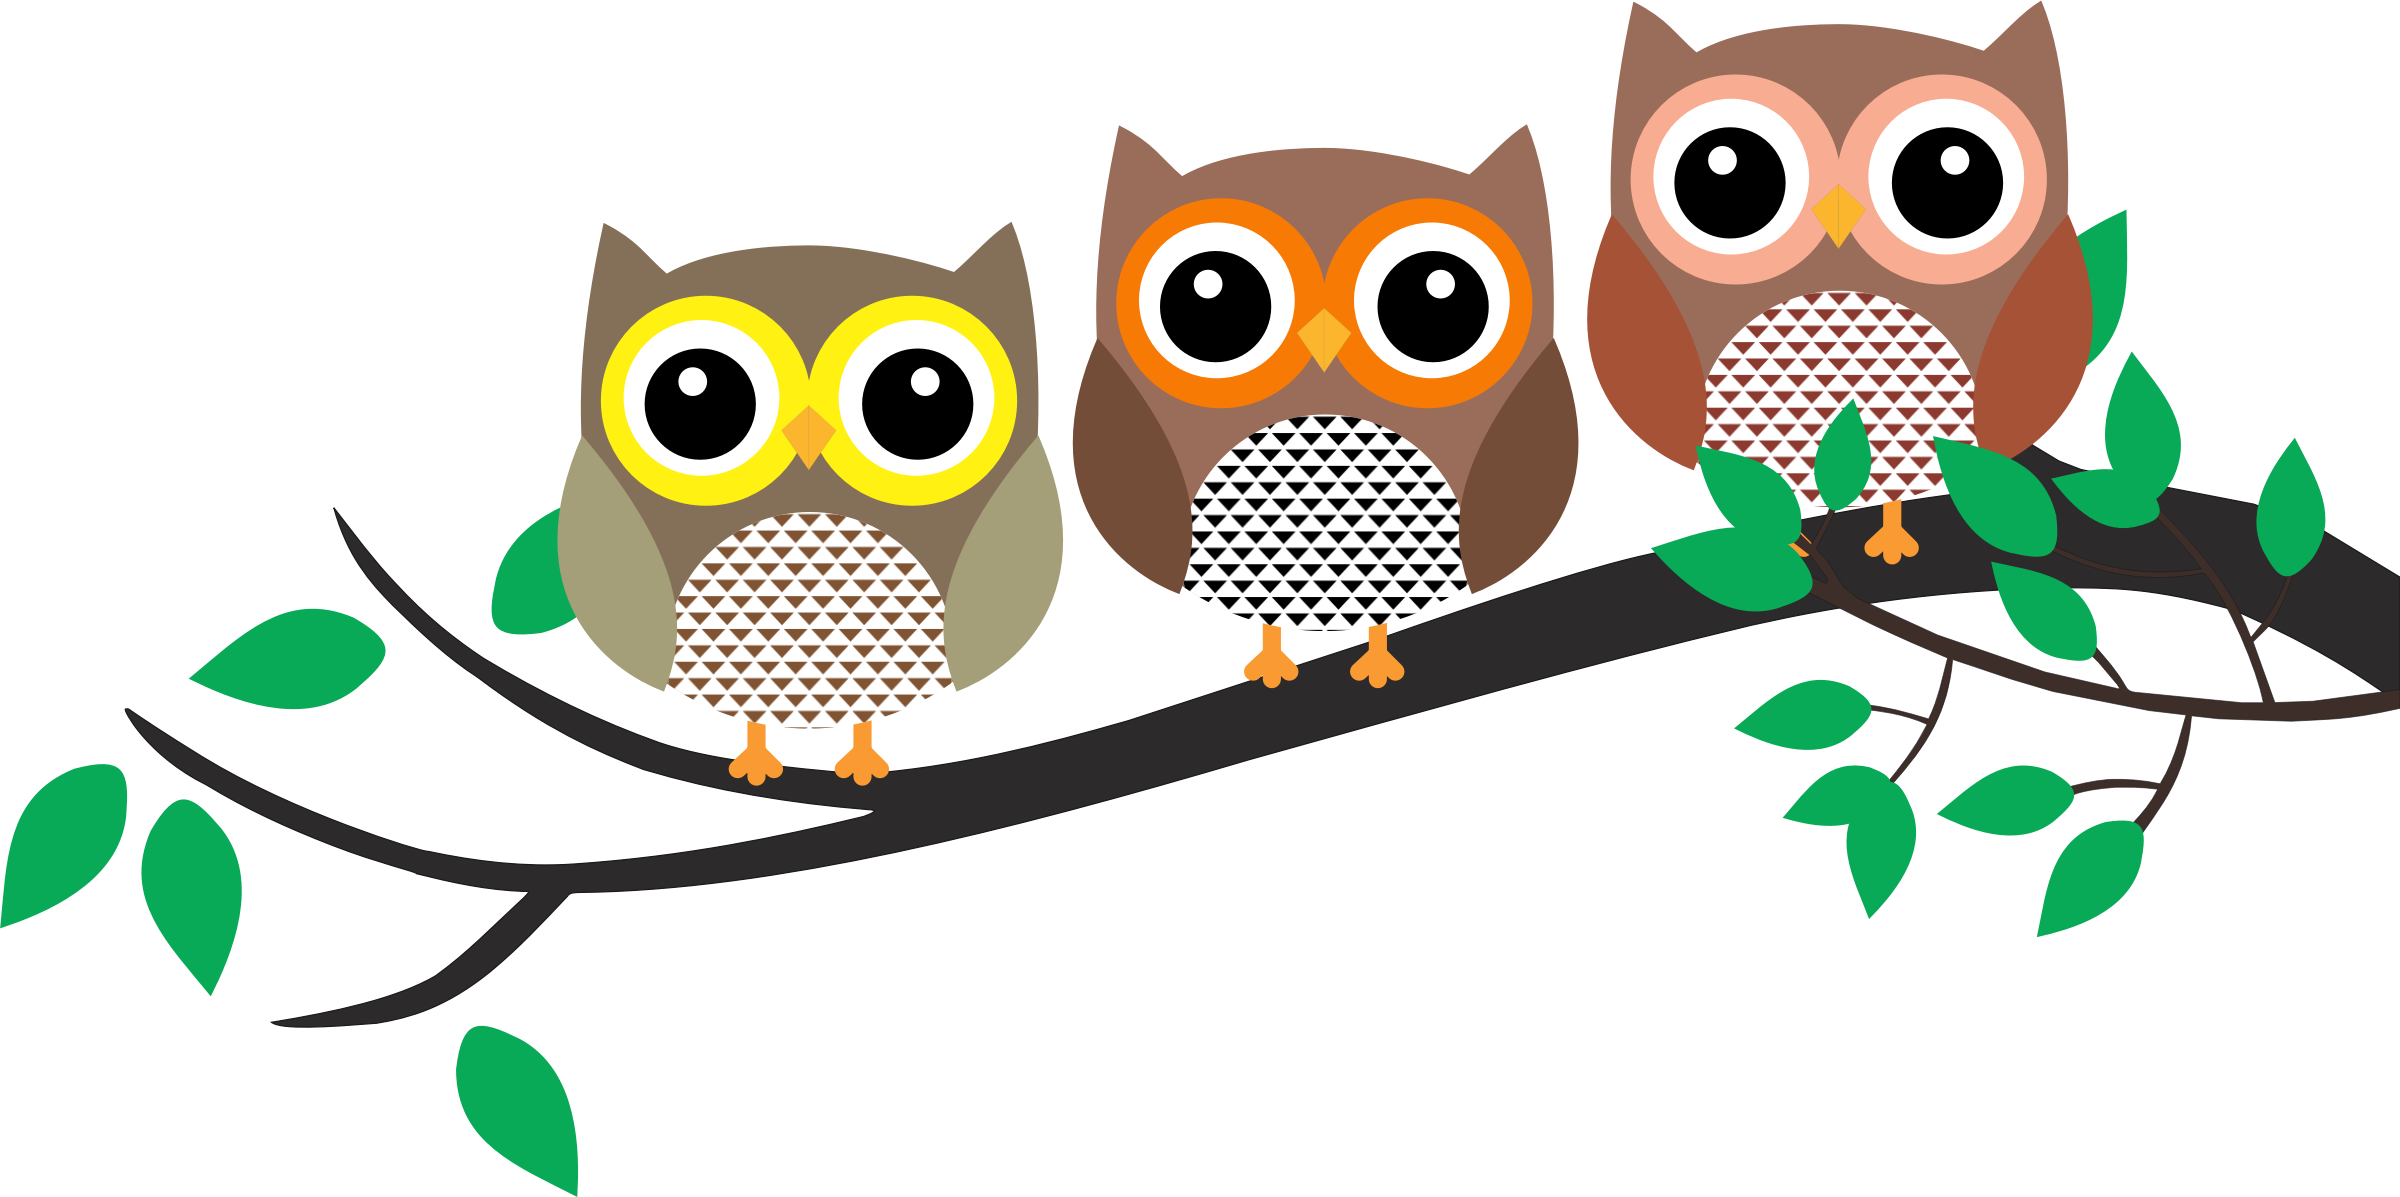 Images Of Owls Png - Owls In A Tree PNG Transparent Owls In A Tree.PNG Images. | PlusPNG